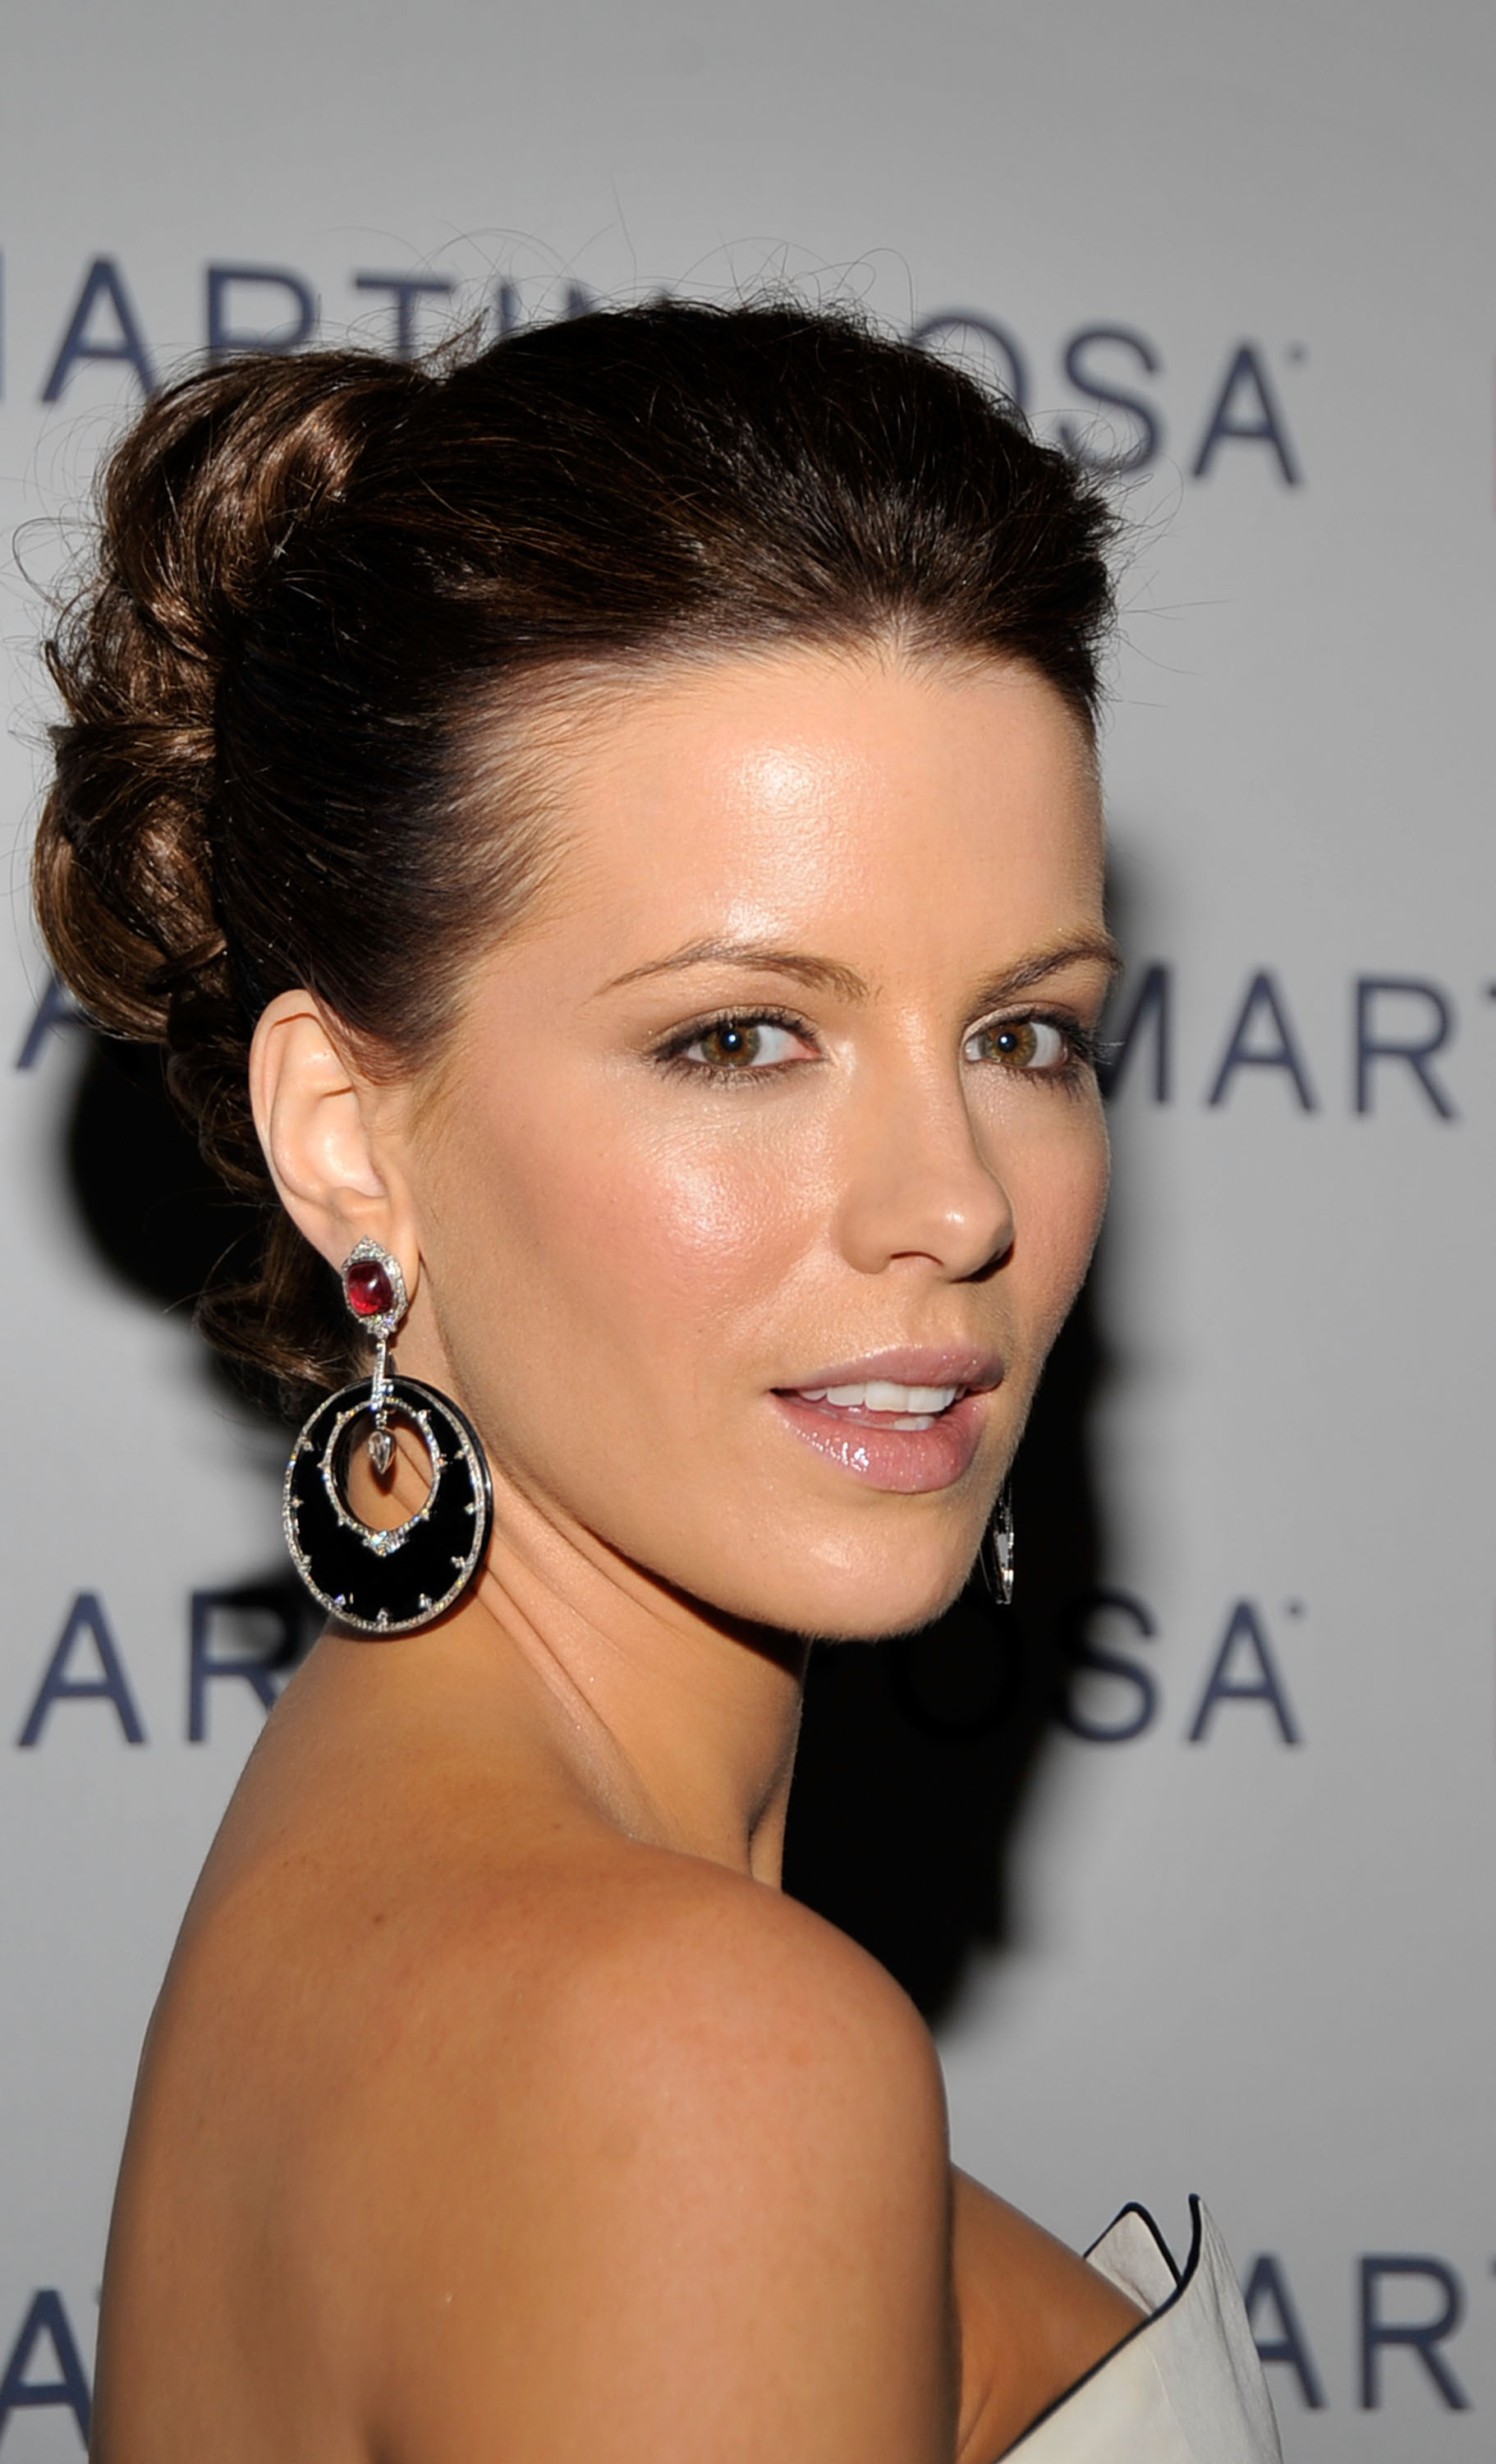 08705_Celebutopia-Kate_Beckinsale-Martin_1_Osa6s_Screening_Of_All_About_Eve_in_Hollywood-09_122_386lo.jpg